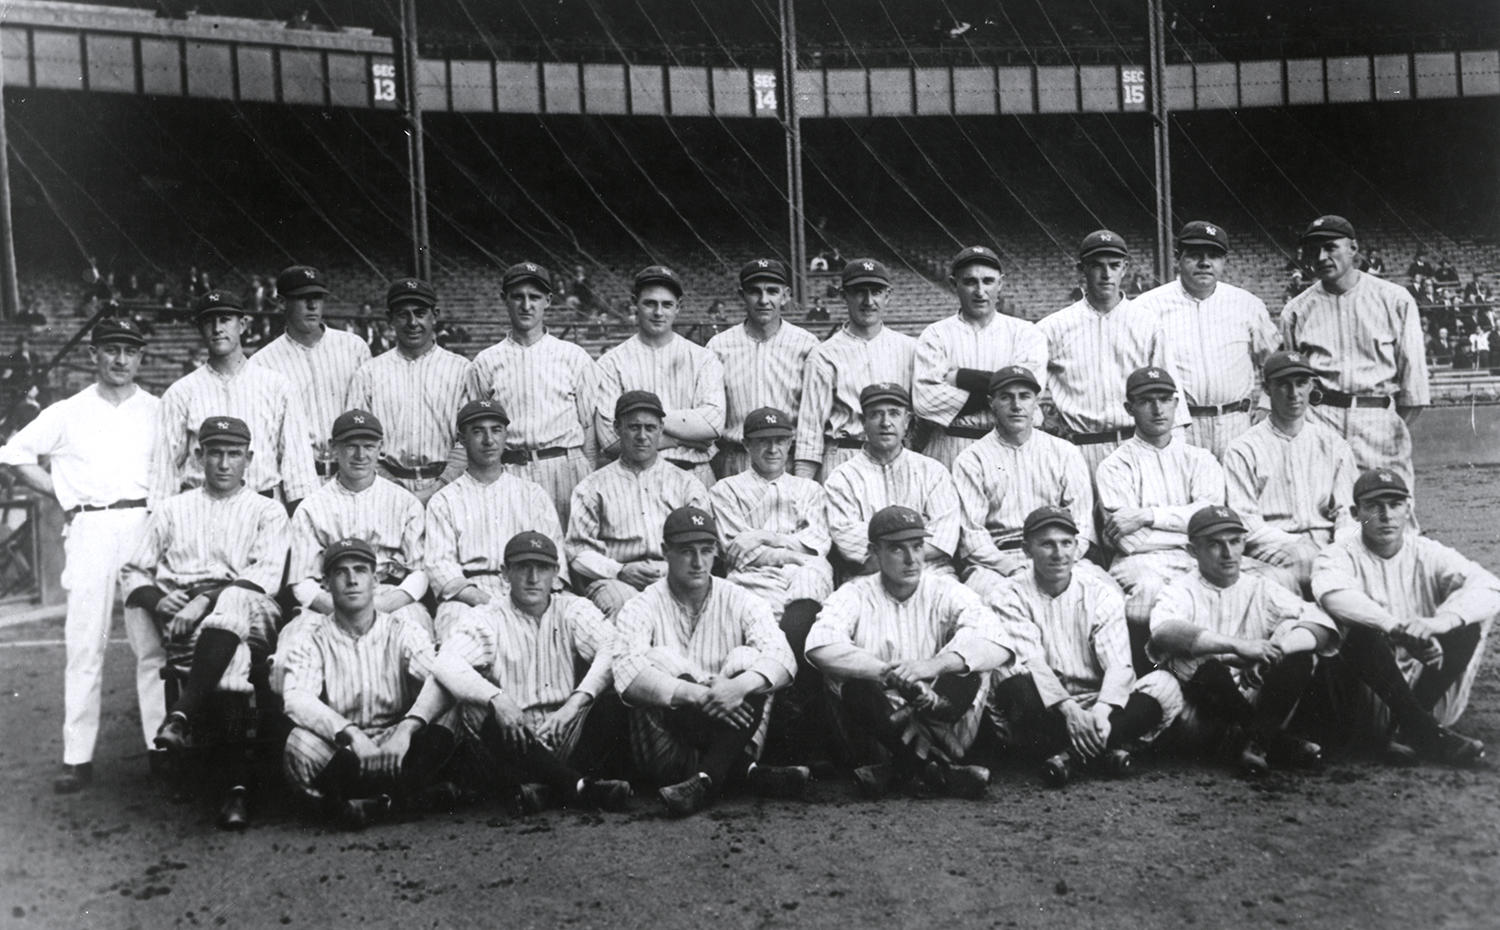 The New York Yankees won their first World Championship in 1923 under Hall of Fame manager Miller Huggins. They would win 26 more over the next 93 years. (National Baseball Hall of Fame and Museum)